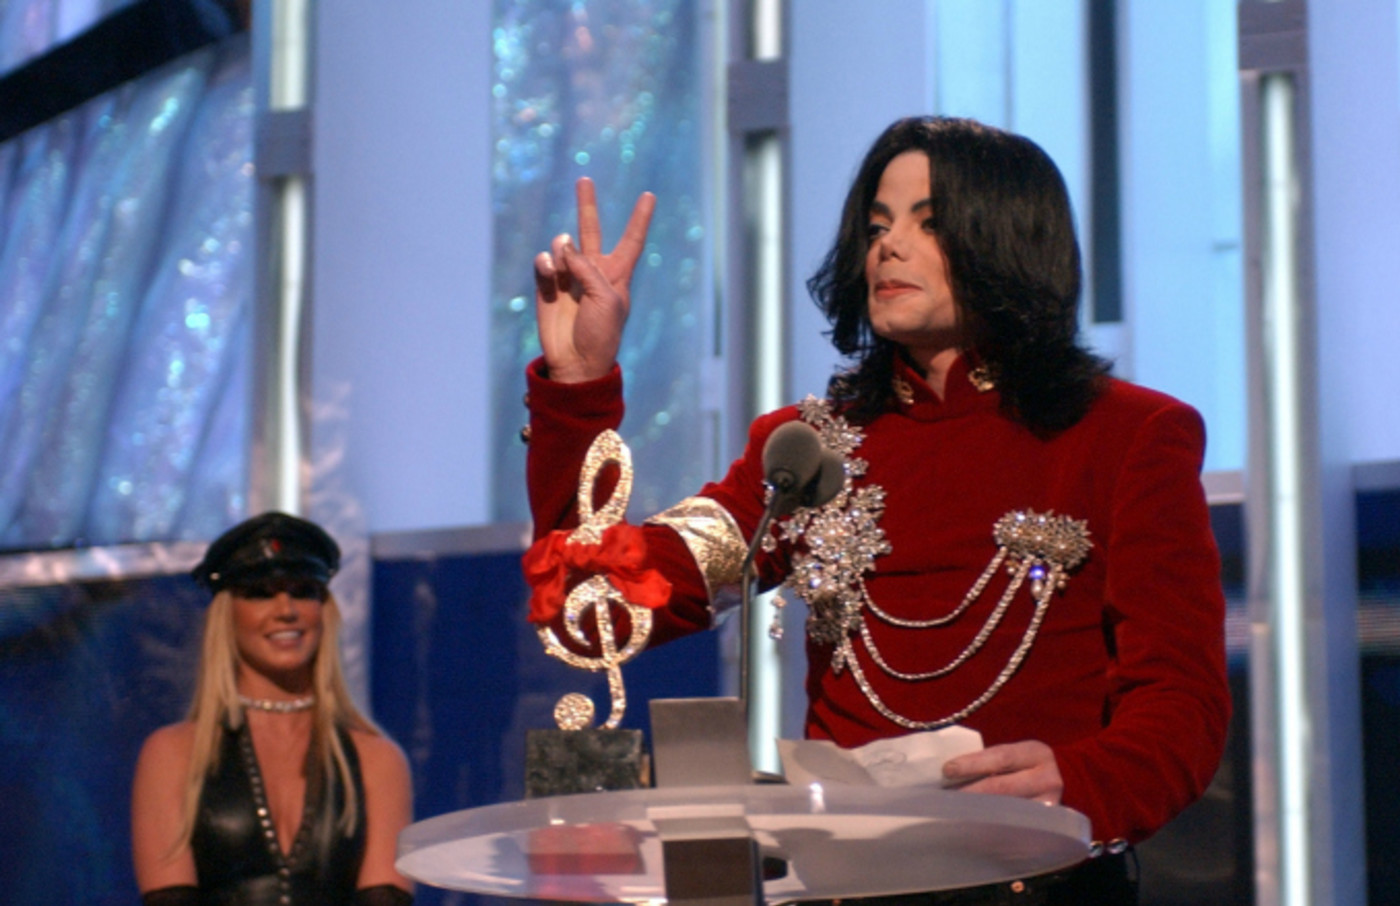 Astounding Mtv Reportedly Wants To Remove Michael Jacksons Name From Video Funny Birthday Cards Online Barepcheapnameinfo